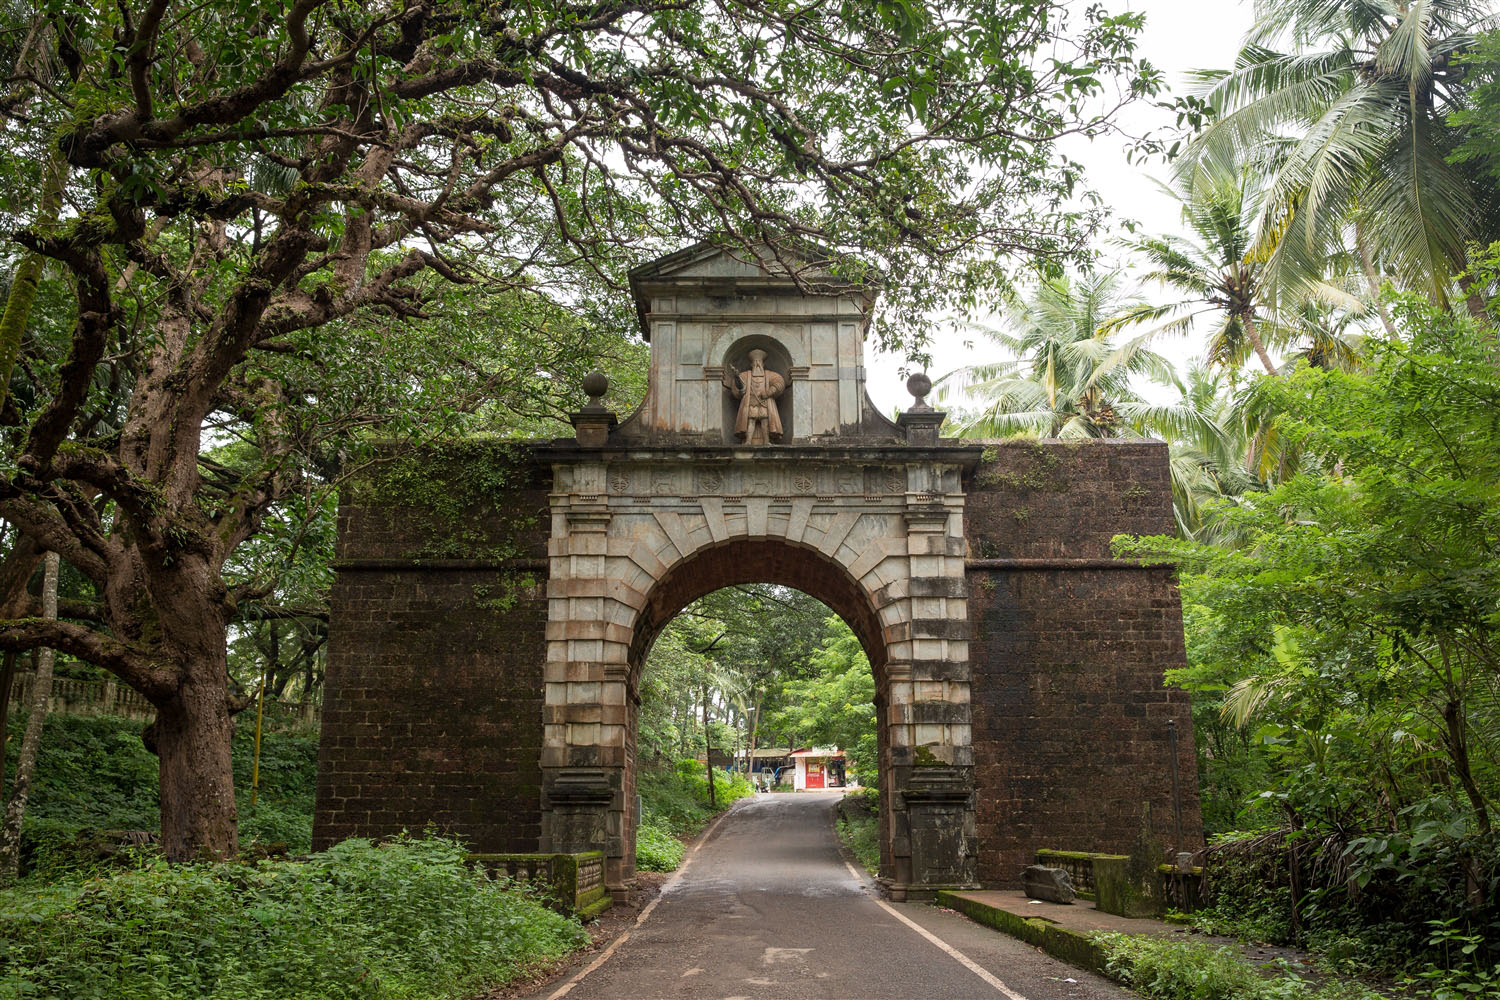 Viceroy's Arch Old Goa, Viceroy's Arch – Kevin Standage